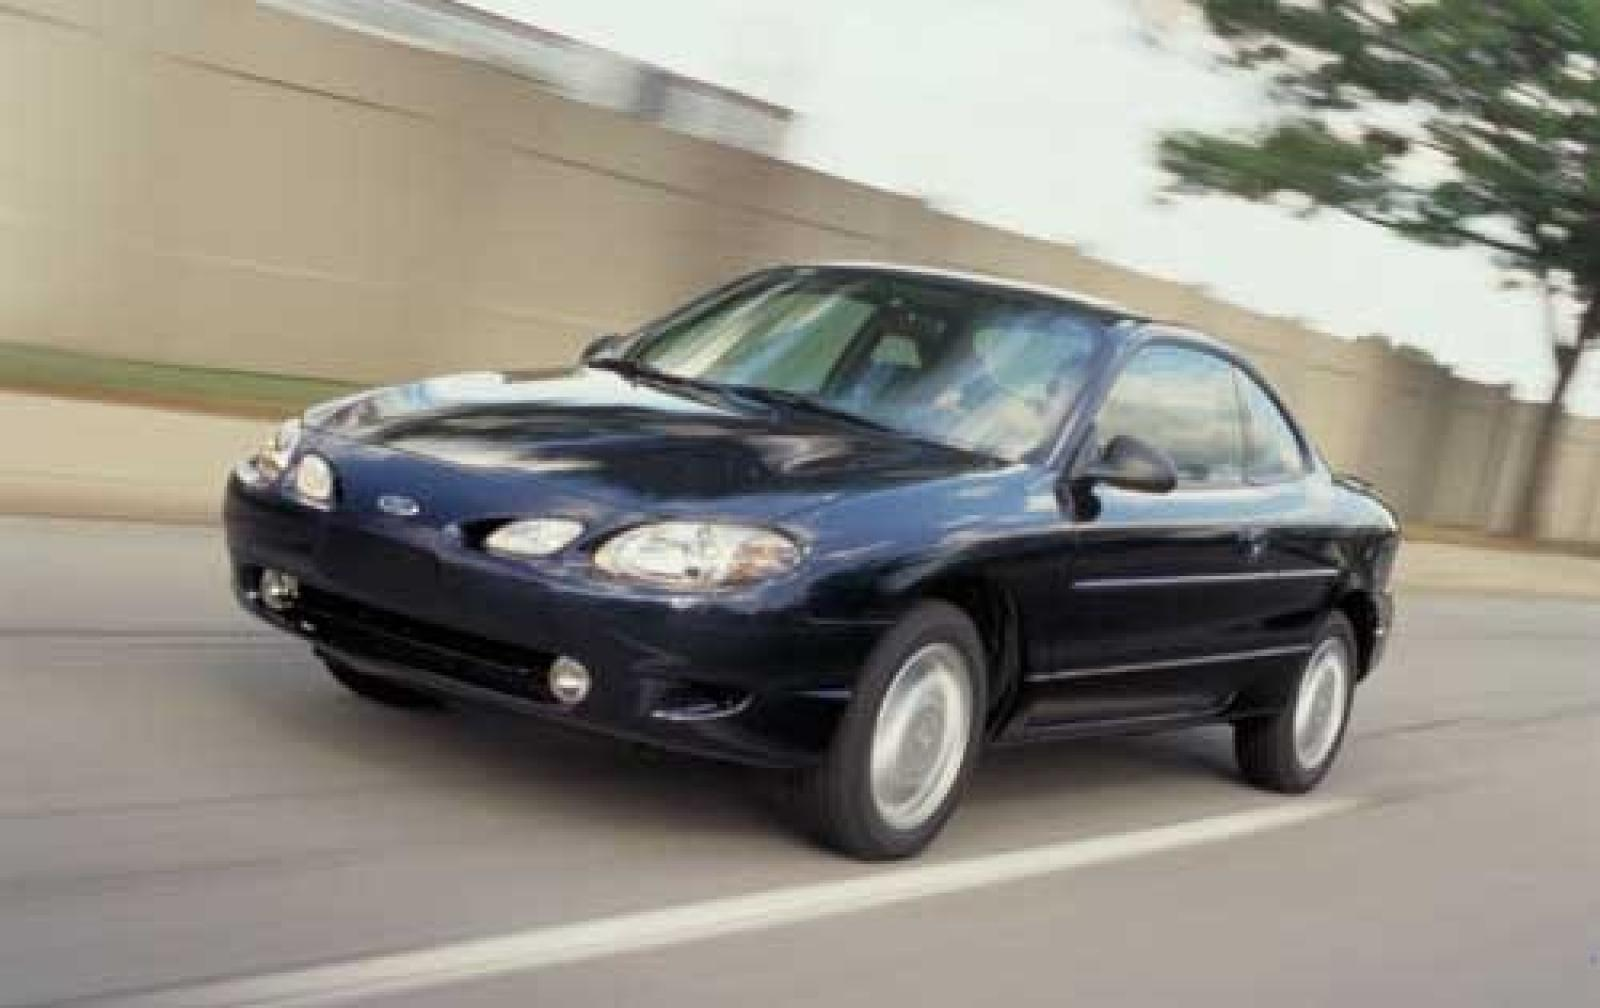 2003 Ford Escort Information And Photos Zombiedrive Orion Wiring Diagram 800 1024 1280 1600 Origin